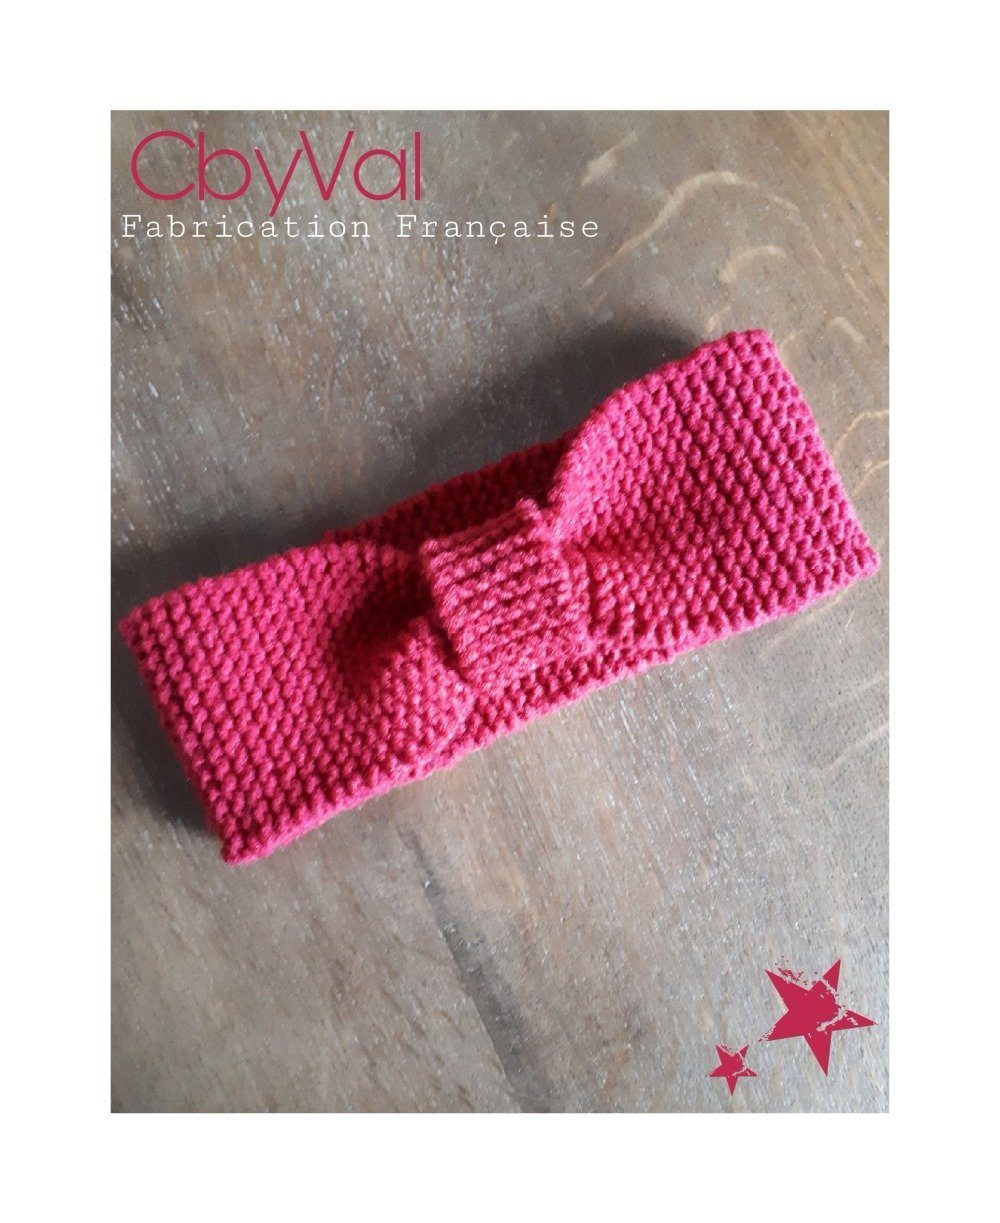 Bandeau Turban/Headband Eva - 100% acrylique de couleur Rouge Fushia